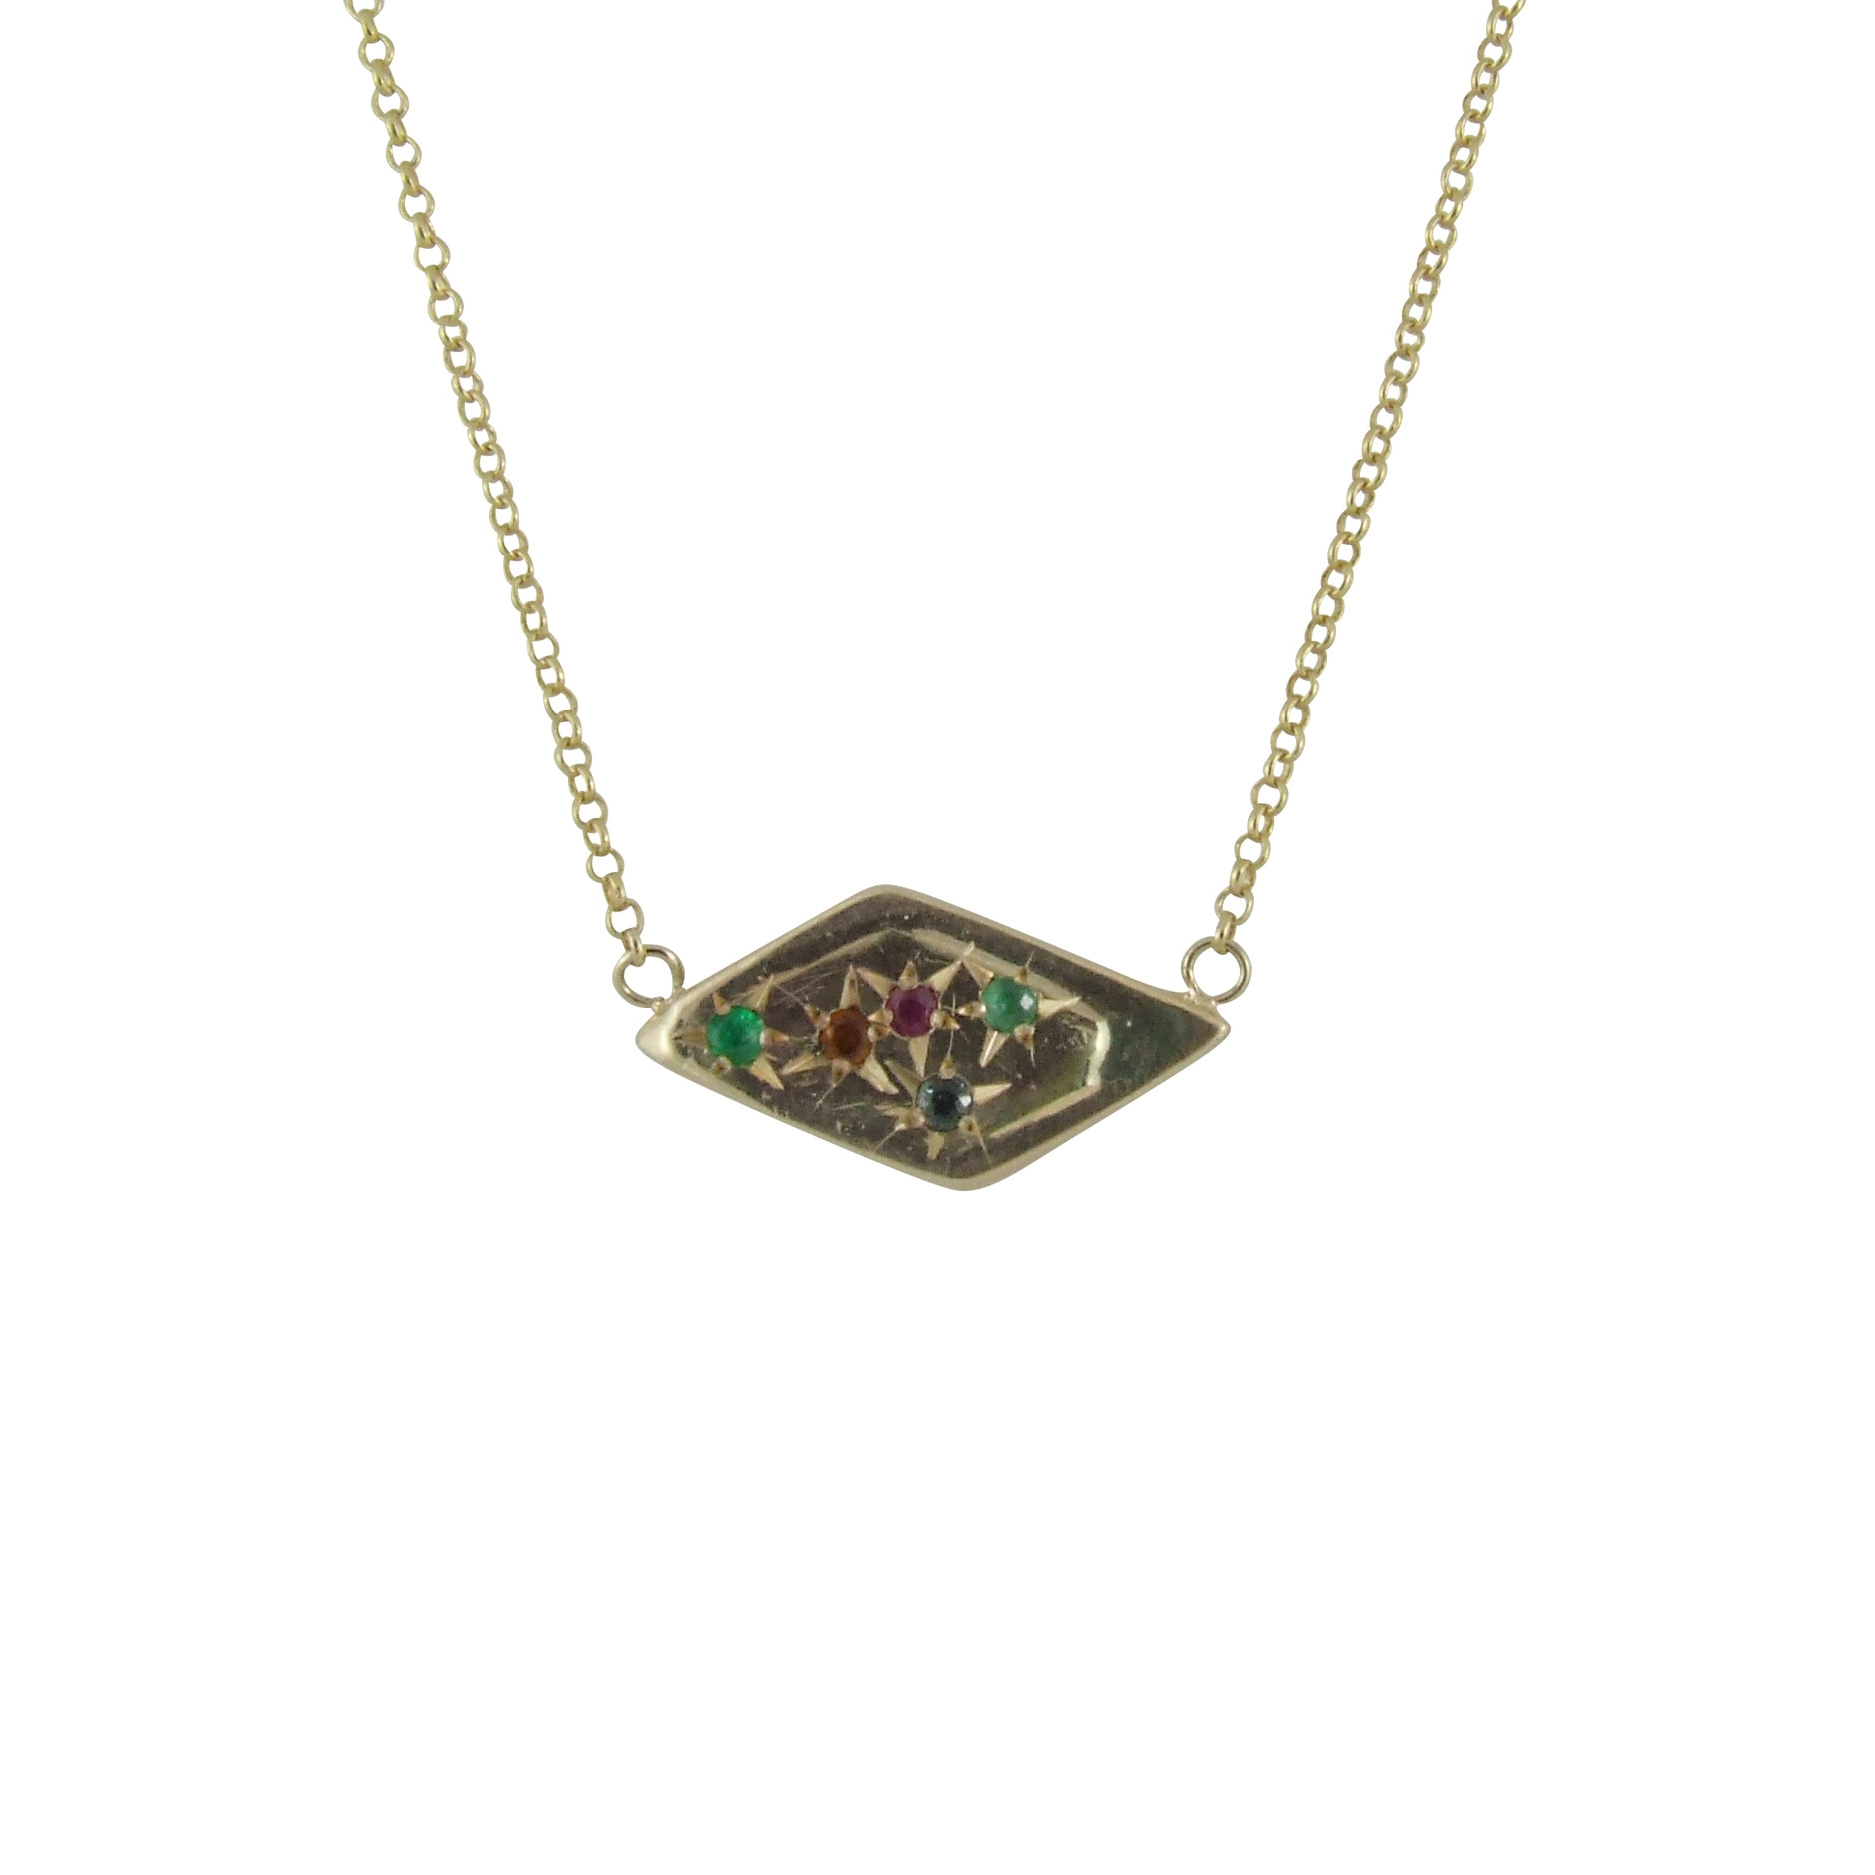 mother necklace (side one)